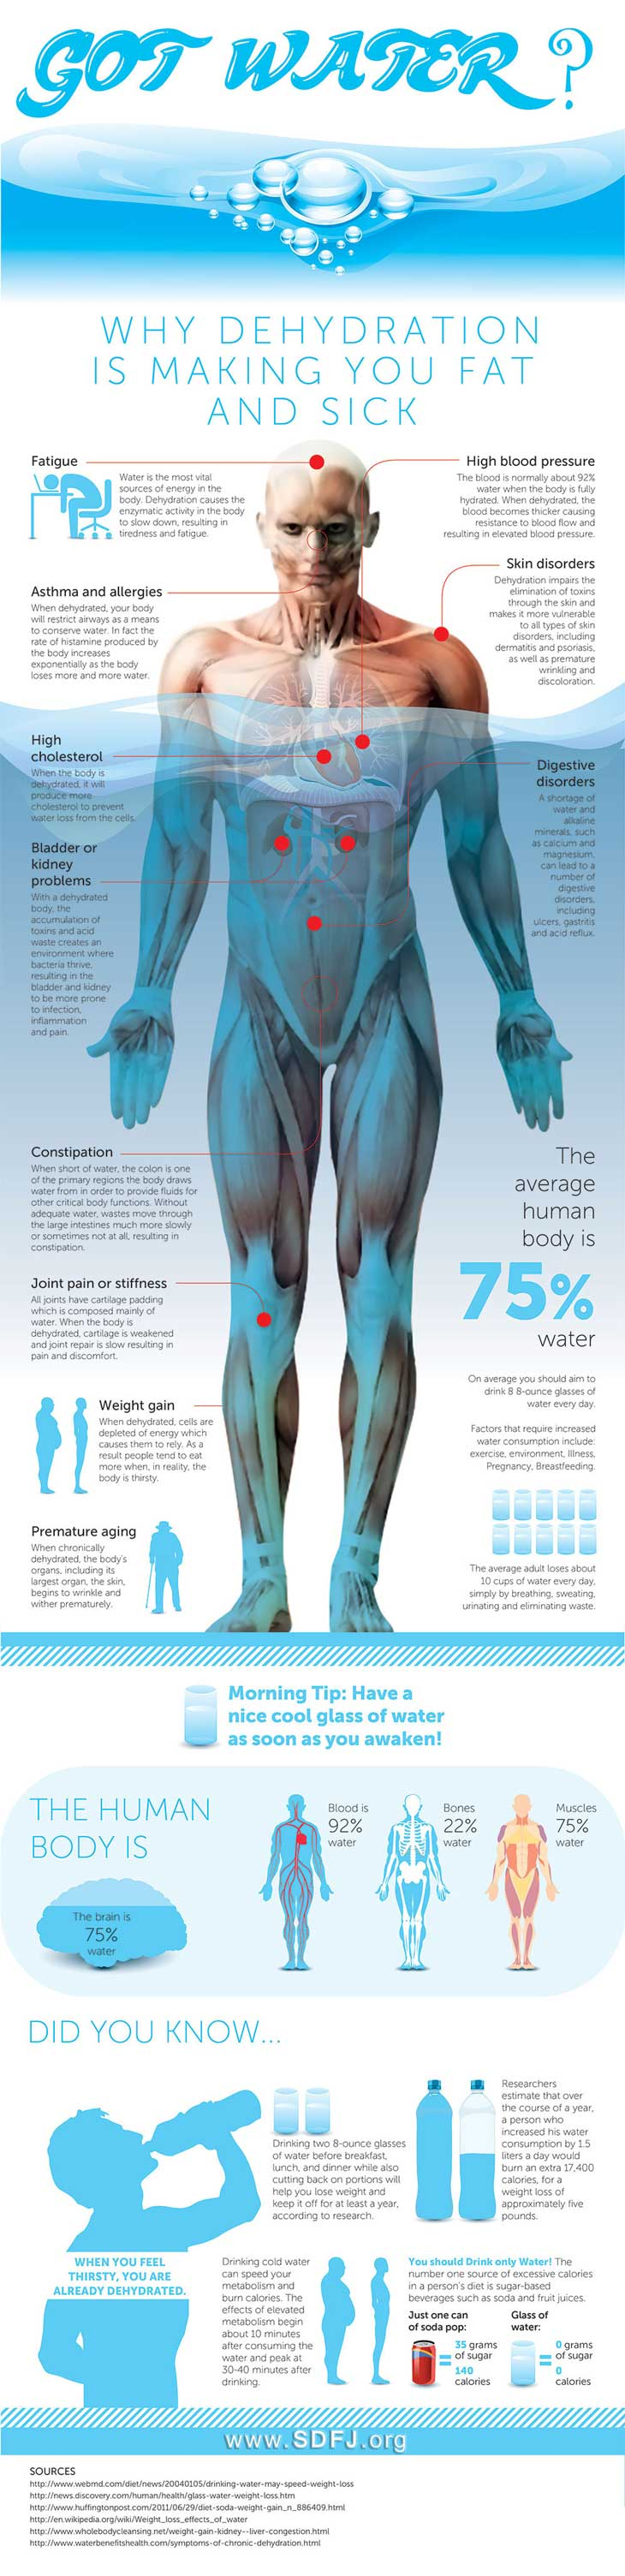 dehydration-infographic